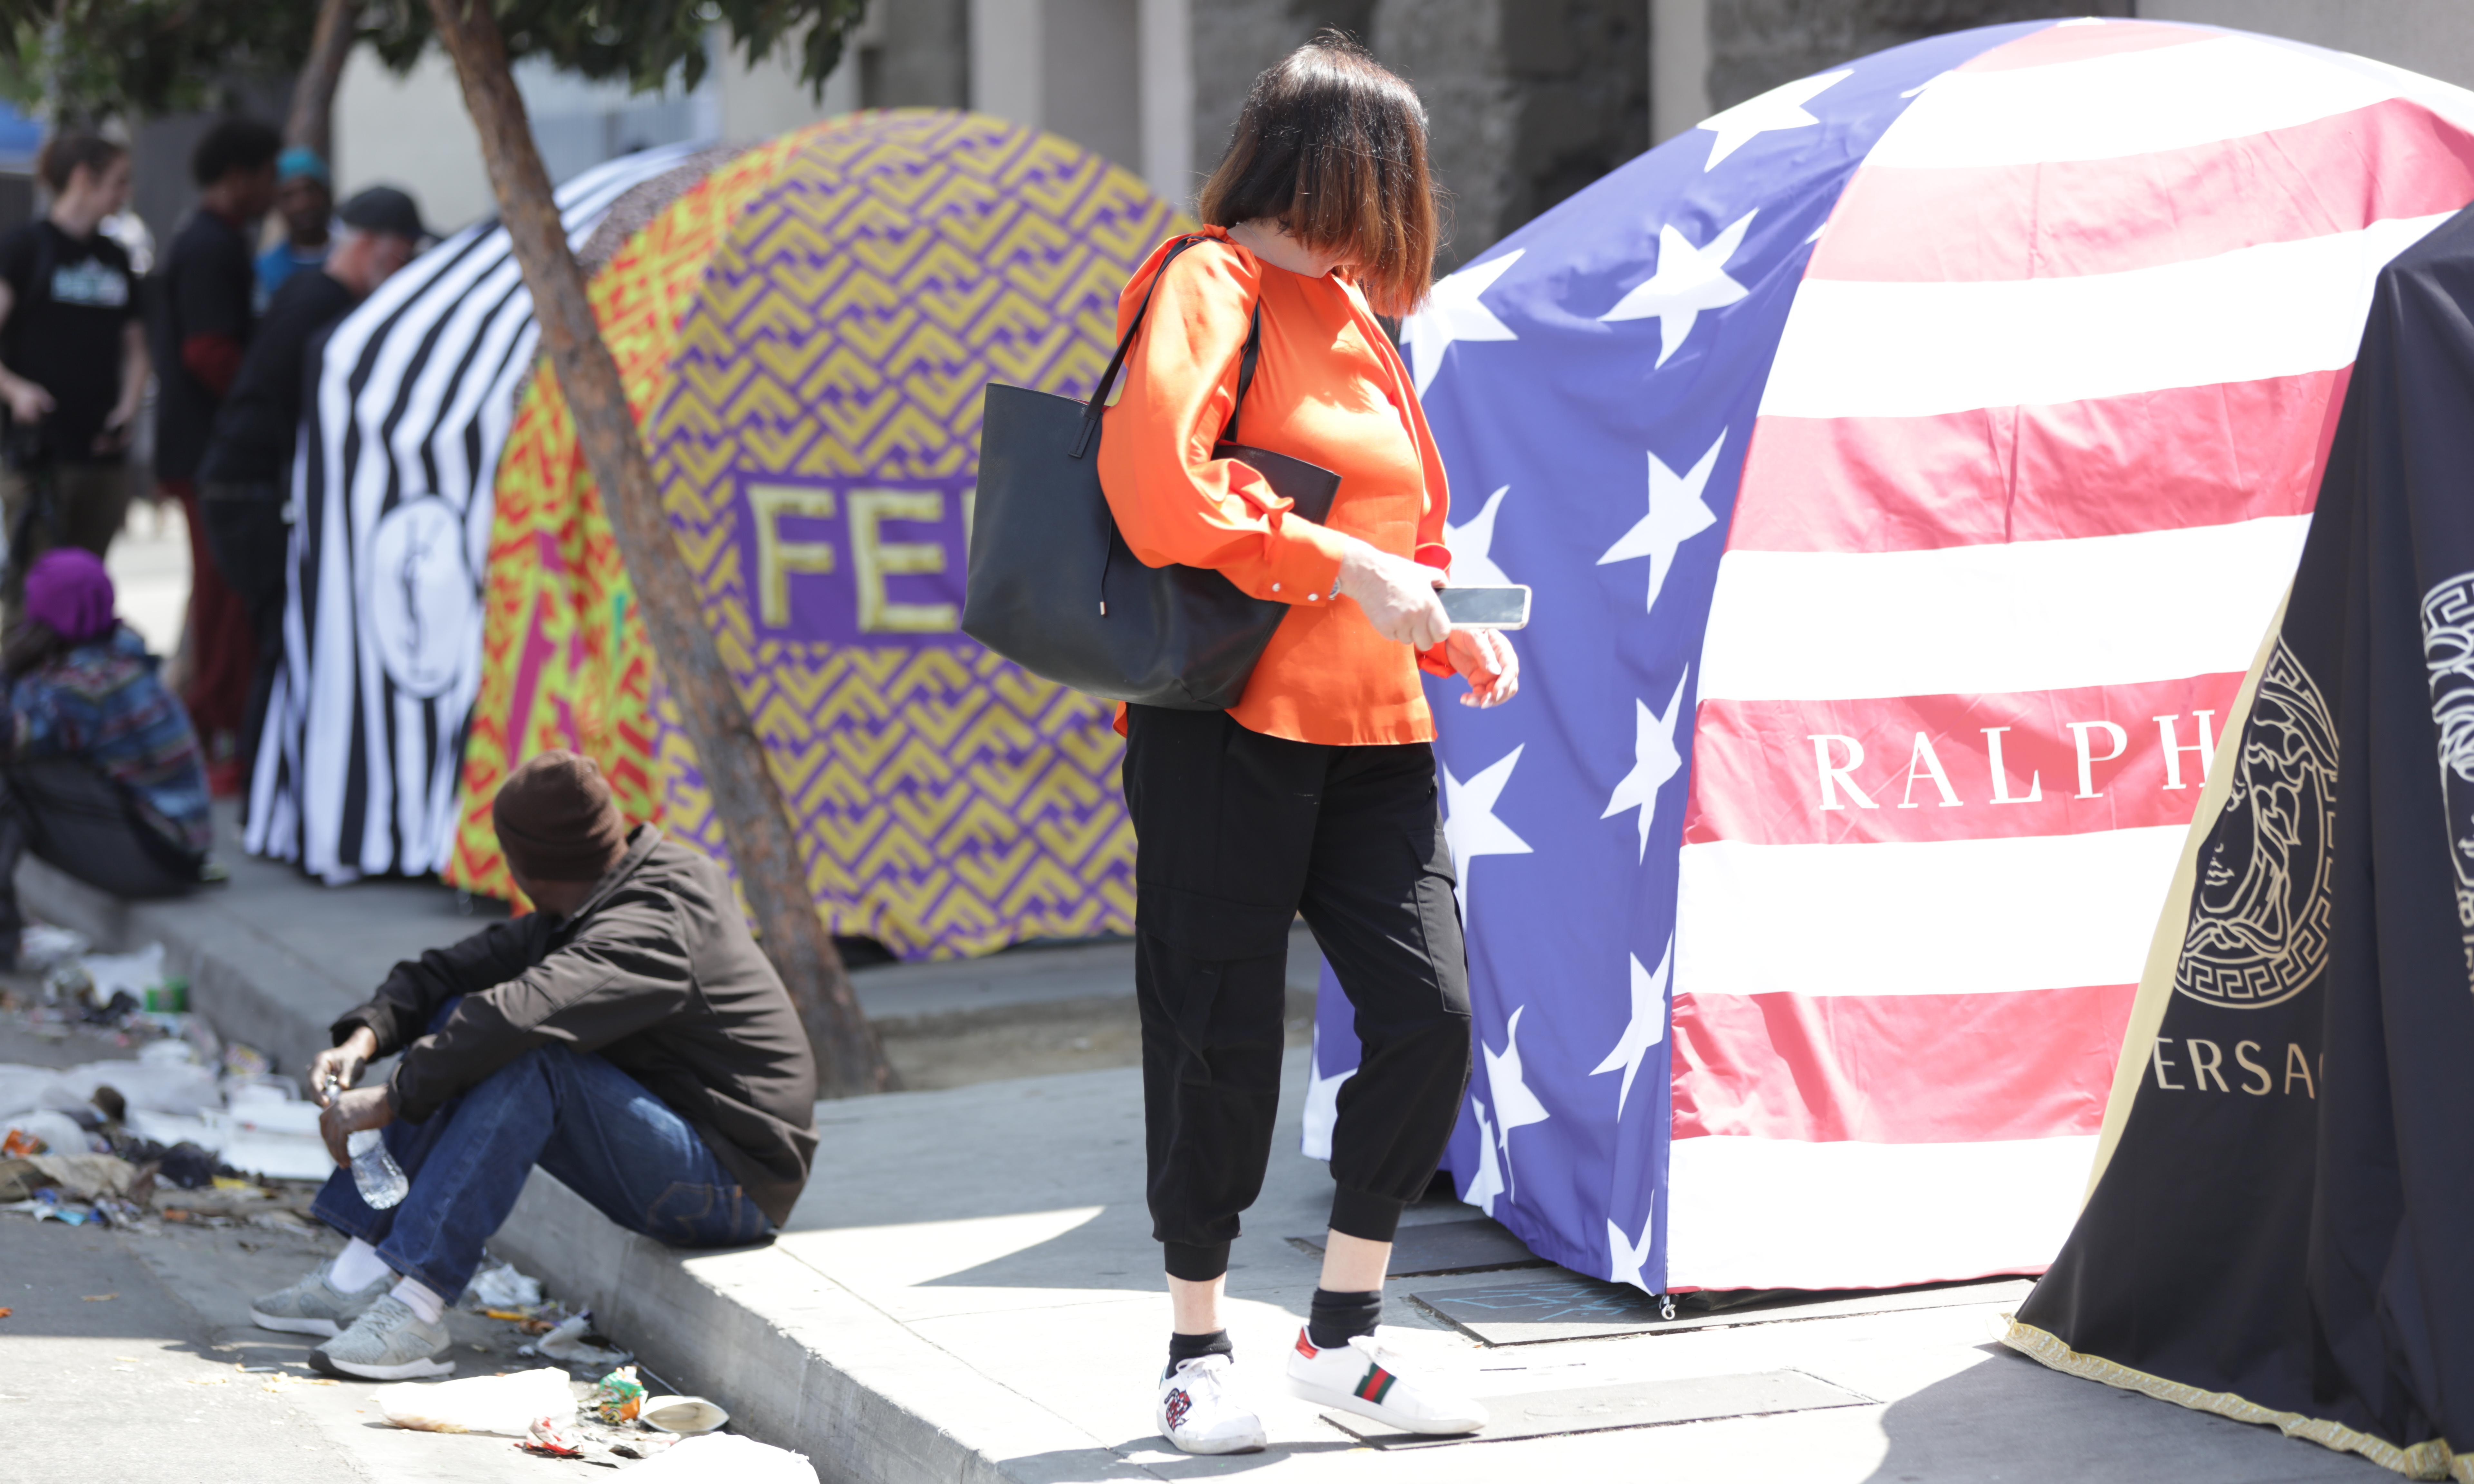 Chemical X's protest against poverty: 'Chanel' tents on LA's Skid Row